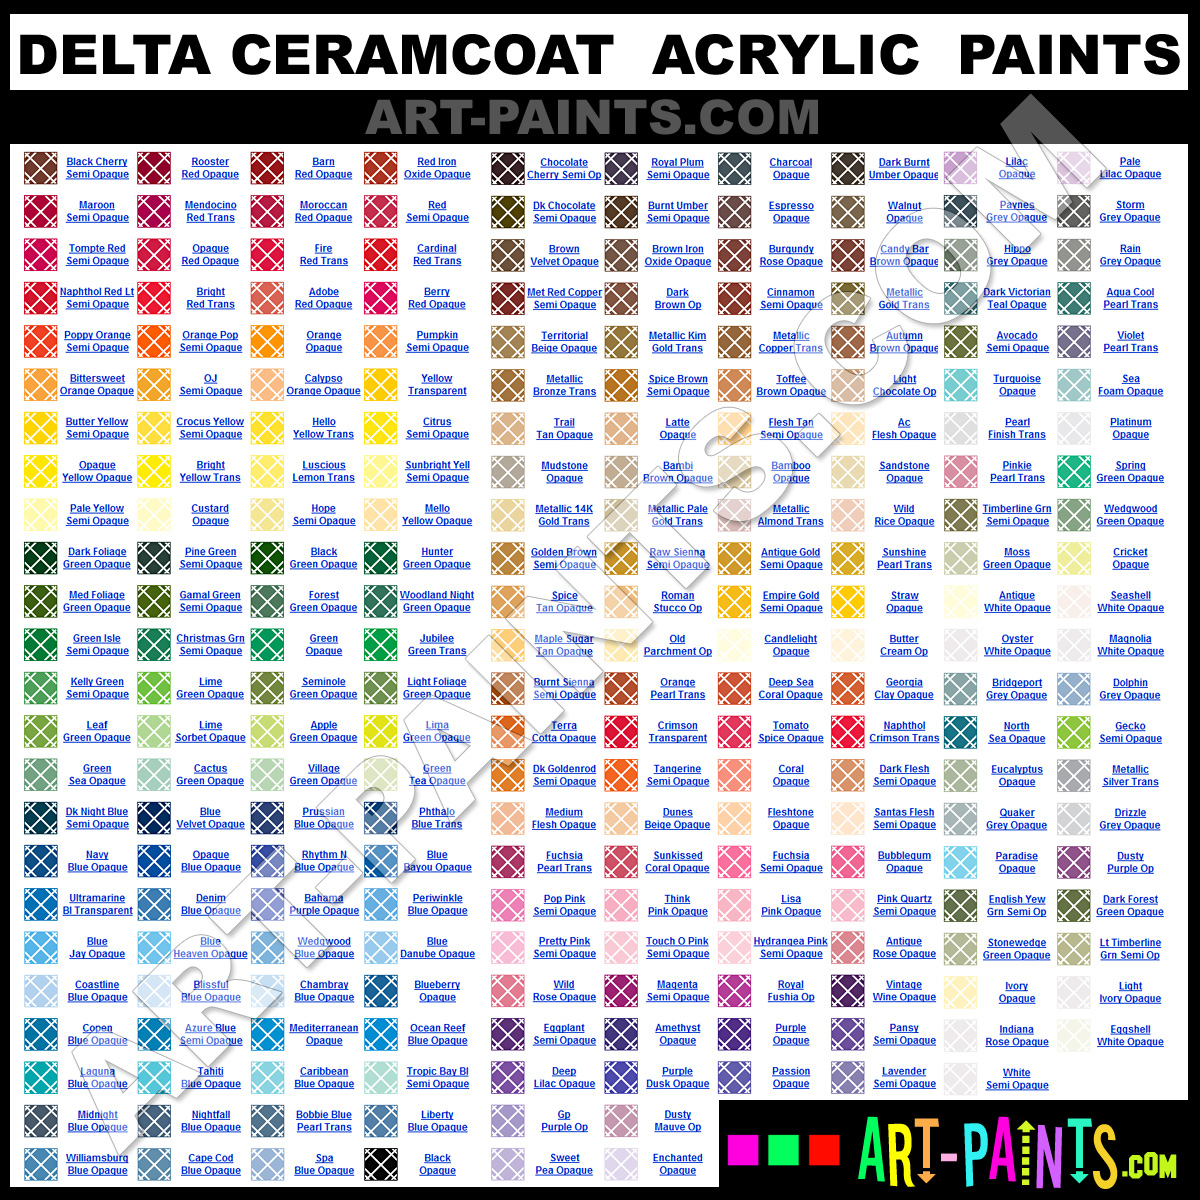 Ceramcoat Delta Acrylic Paint Colors Ceramcoat Delta Paint Colors